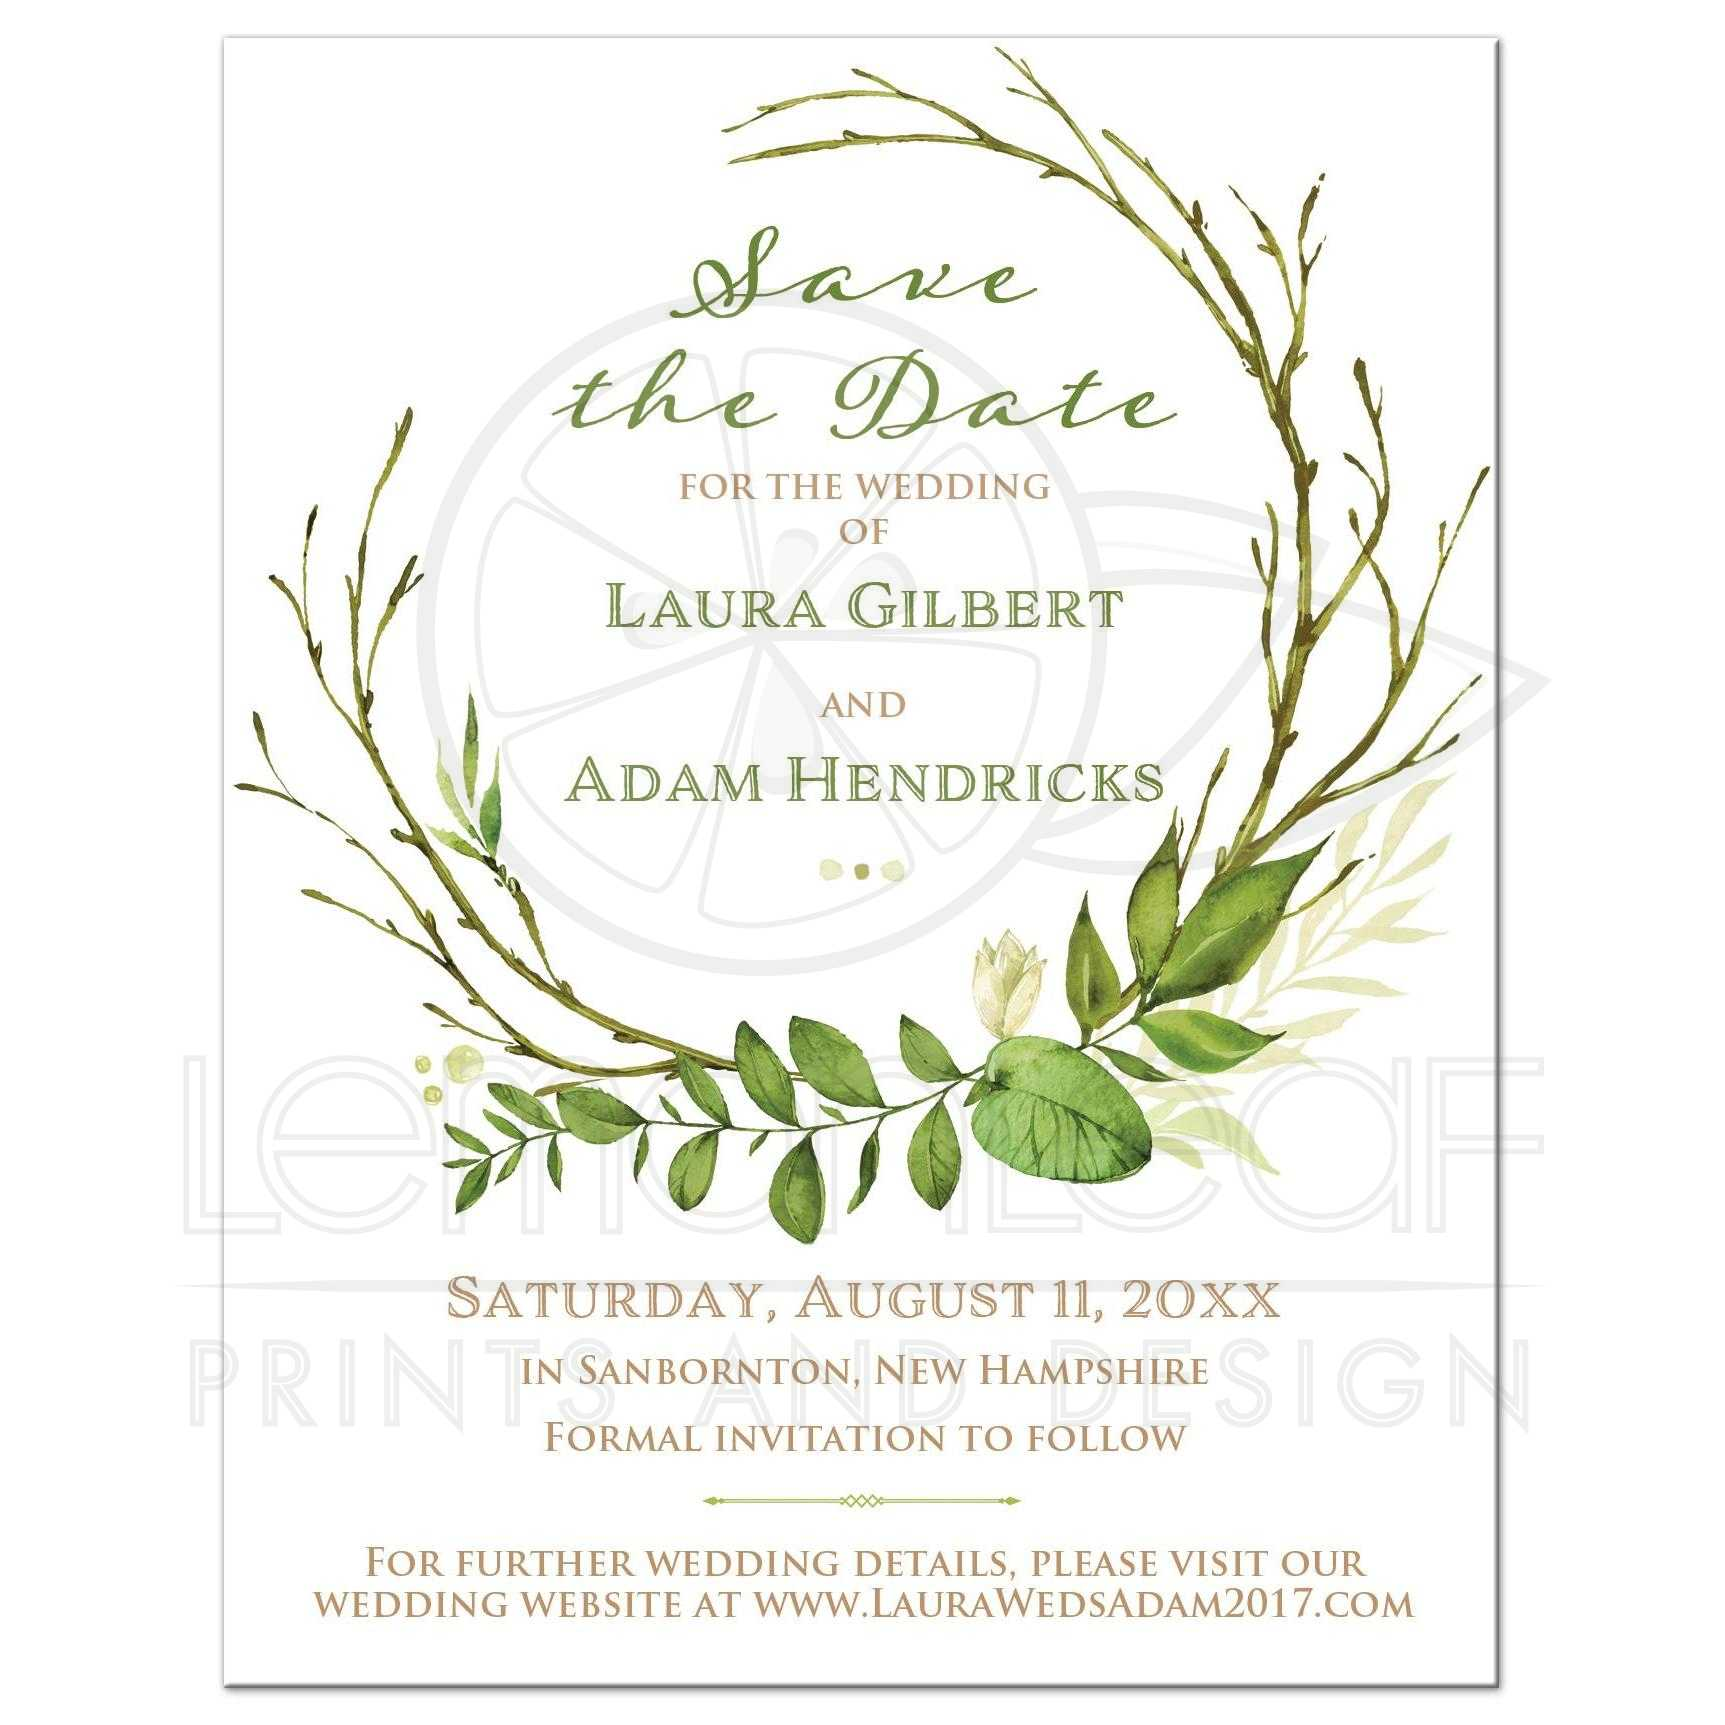 Greenery And White Wedding Save The Date Card Green Leaves